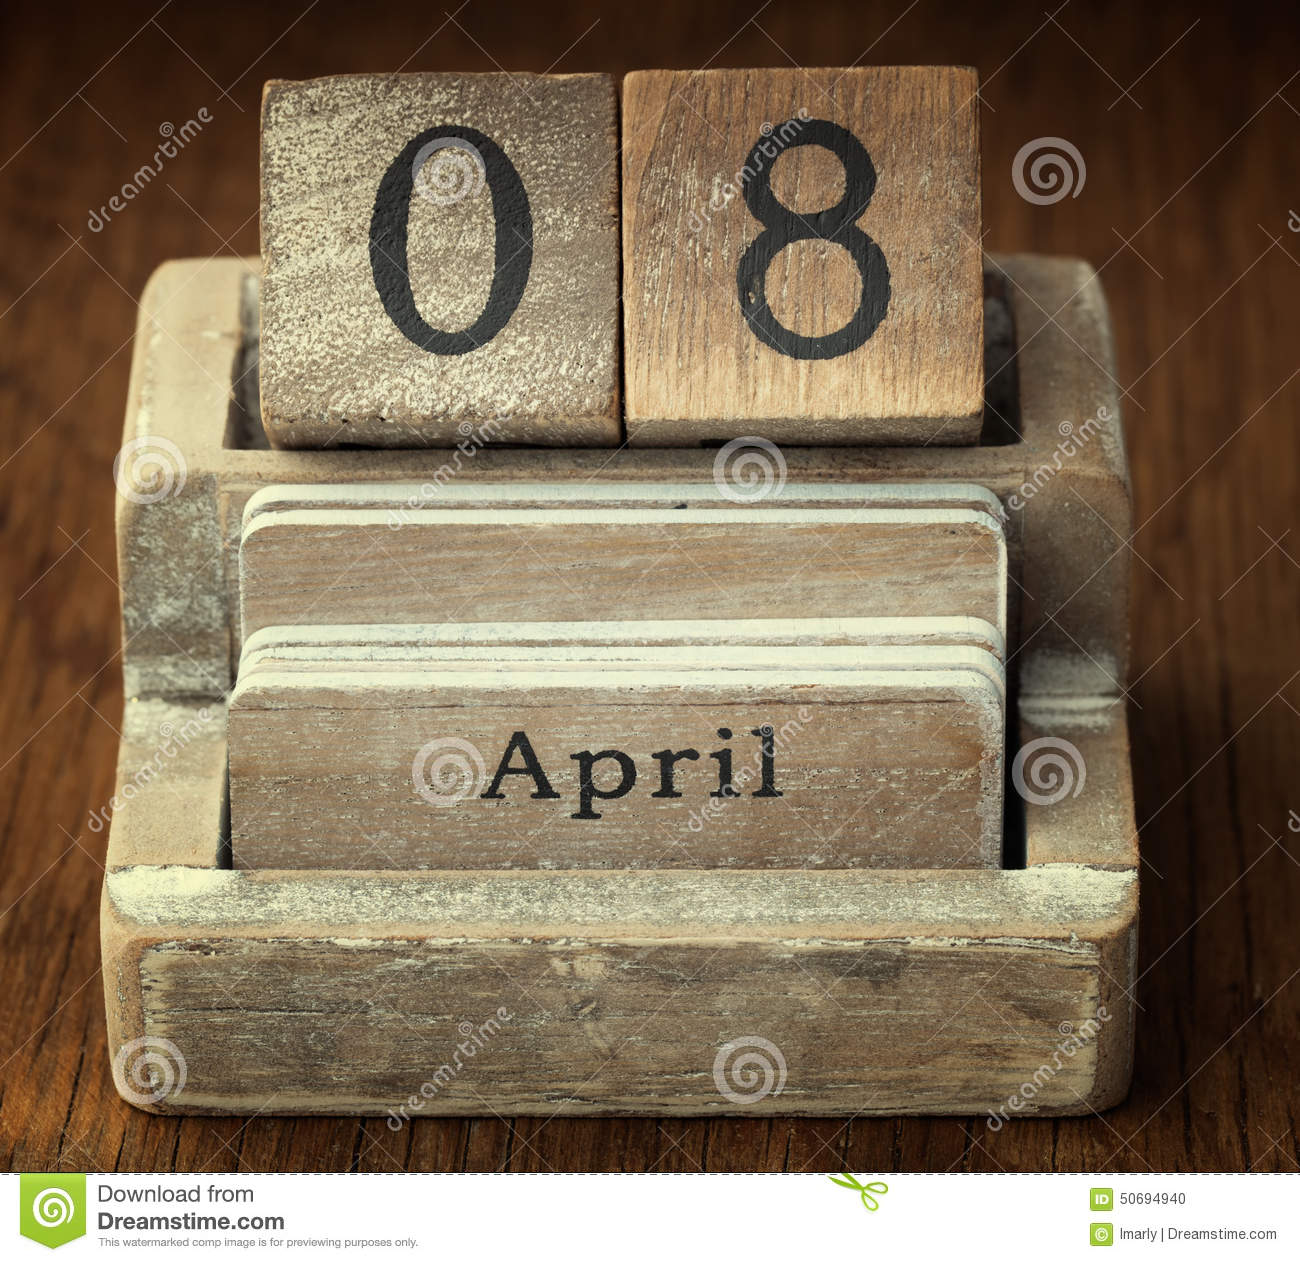 Lucifer Season 4 April 8th: Very Old Wooden Vintage Calendar Showing The Date 8th